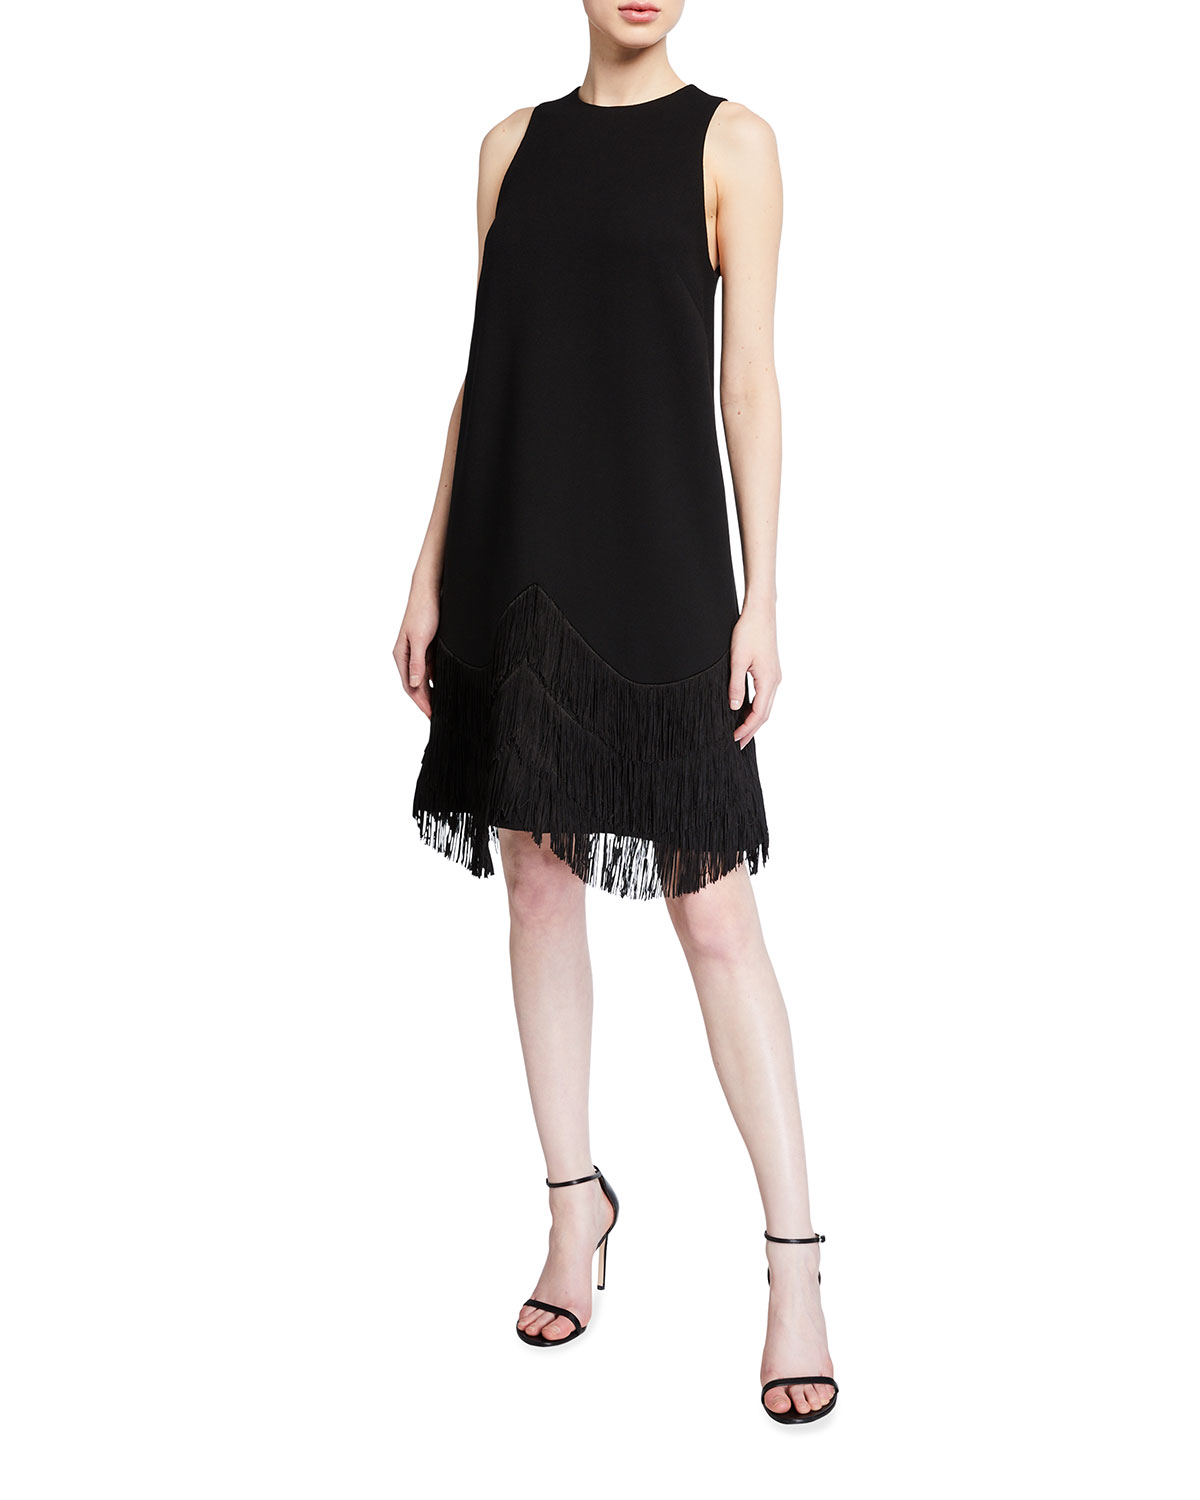 Lela Rose Fringe A-Line Cocktail Dress